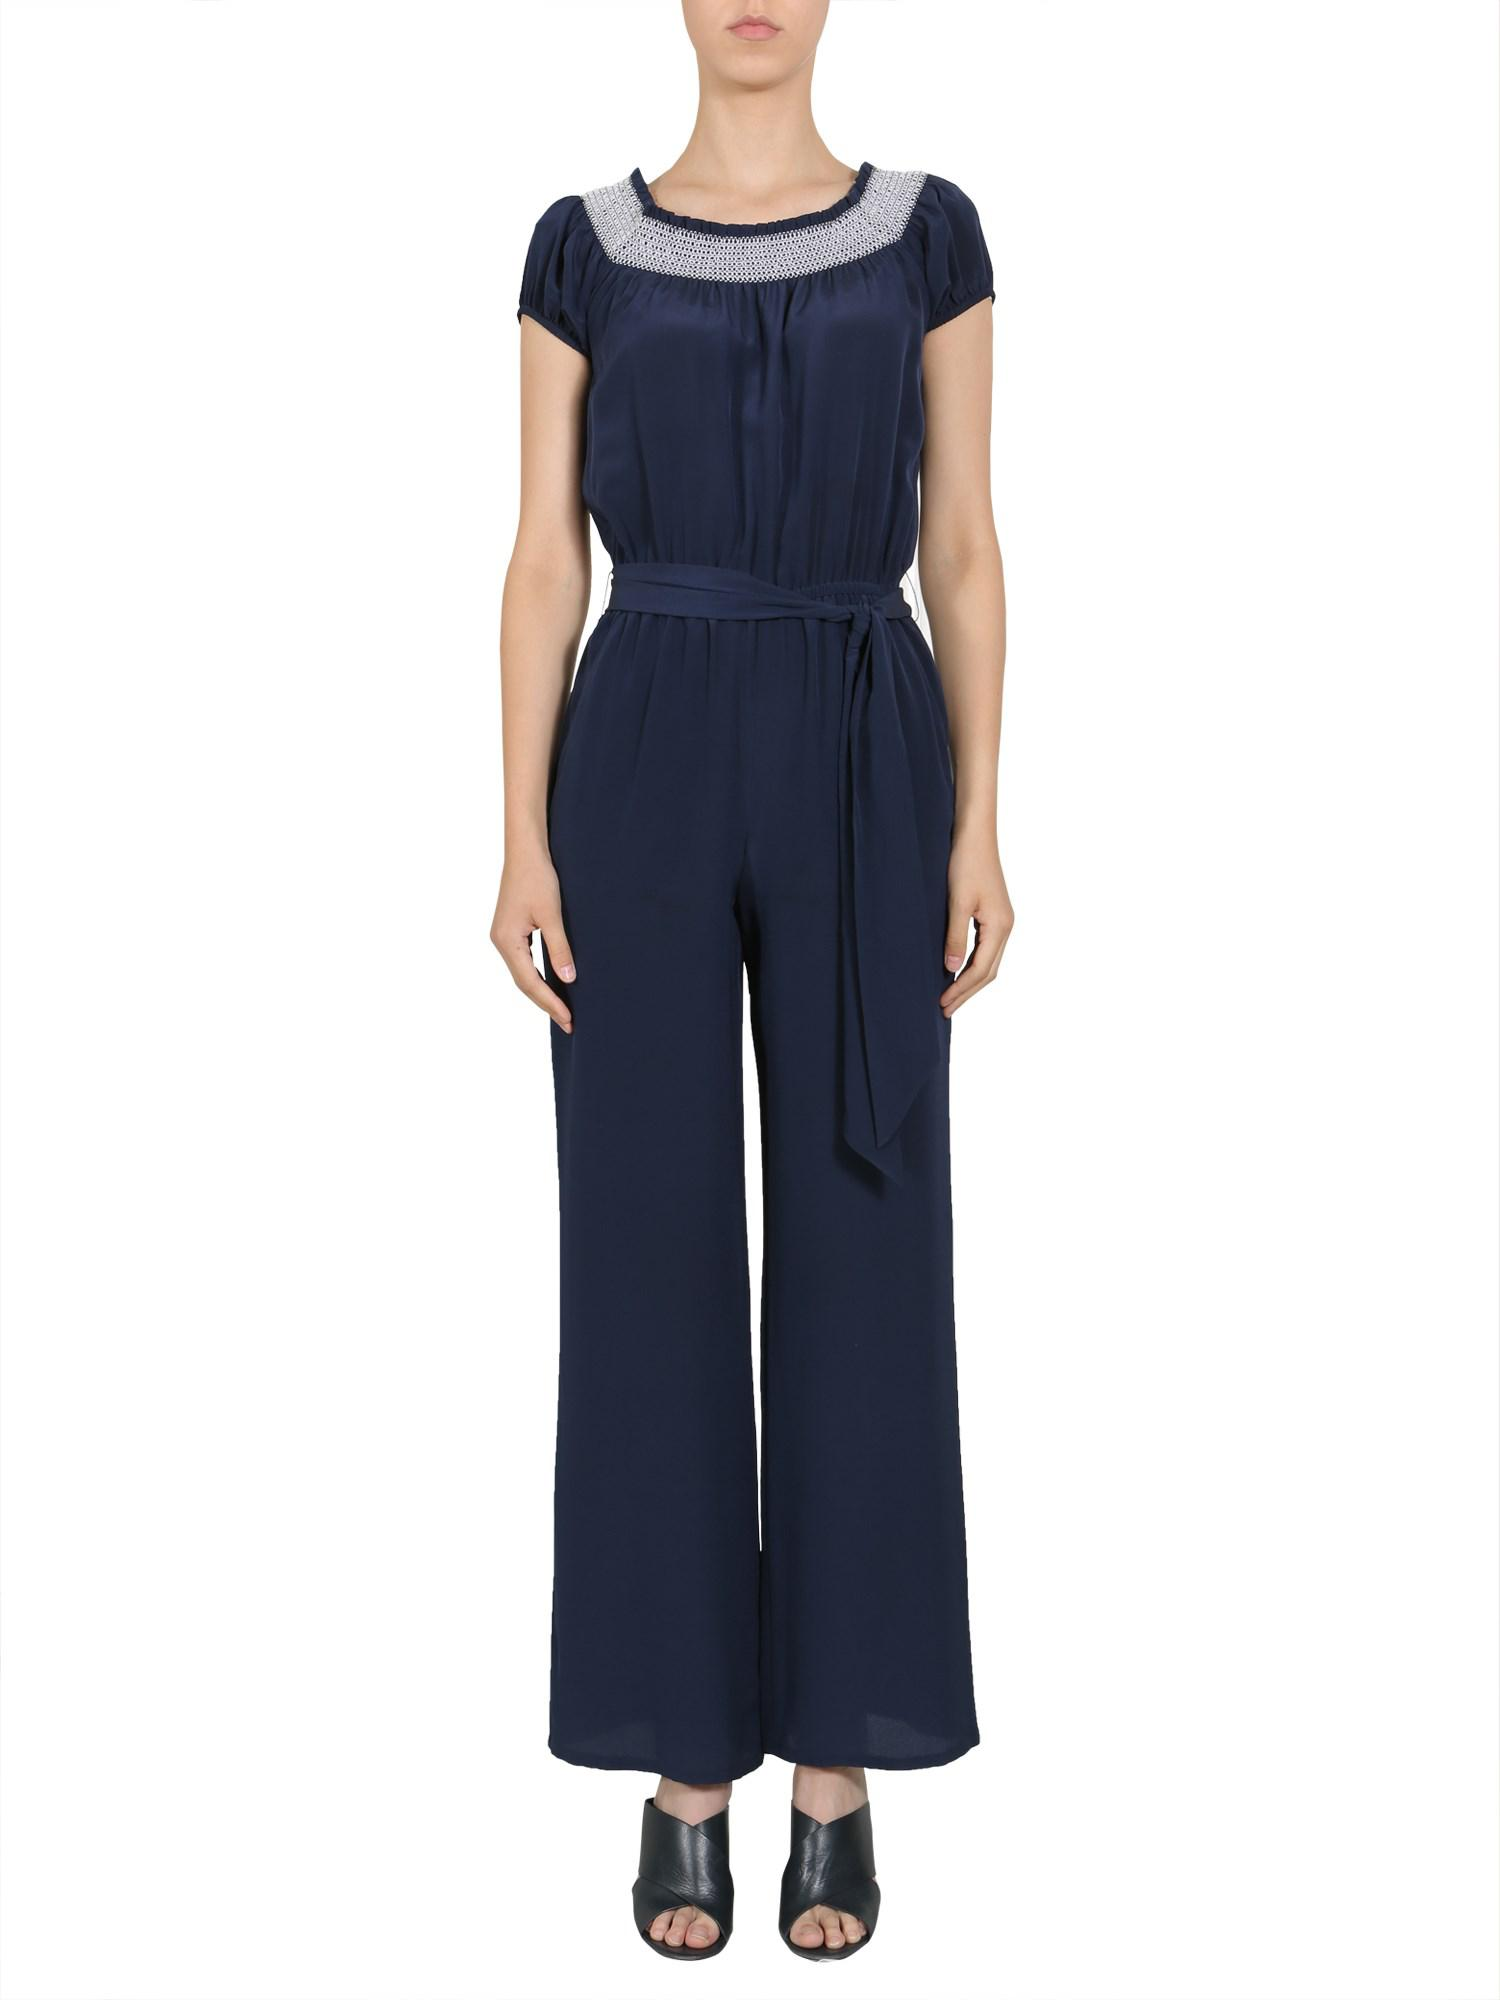 DUNGAREES - Jumpsuits Tory Burch Clearance Sale Fake pFnh7Yb6w0